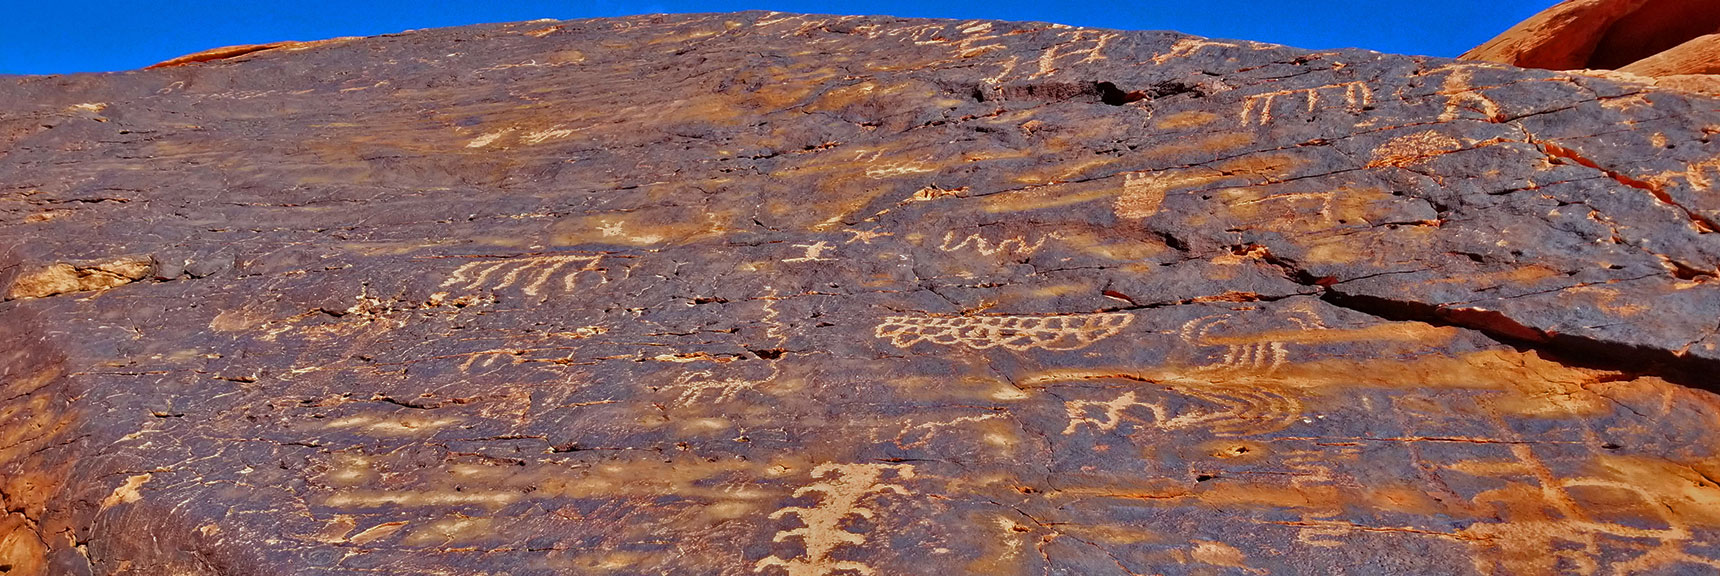 Petroglyphs on Mouse's Tank Trail in Valley of Fire State Park, Nevada, Slide 10